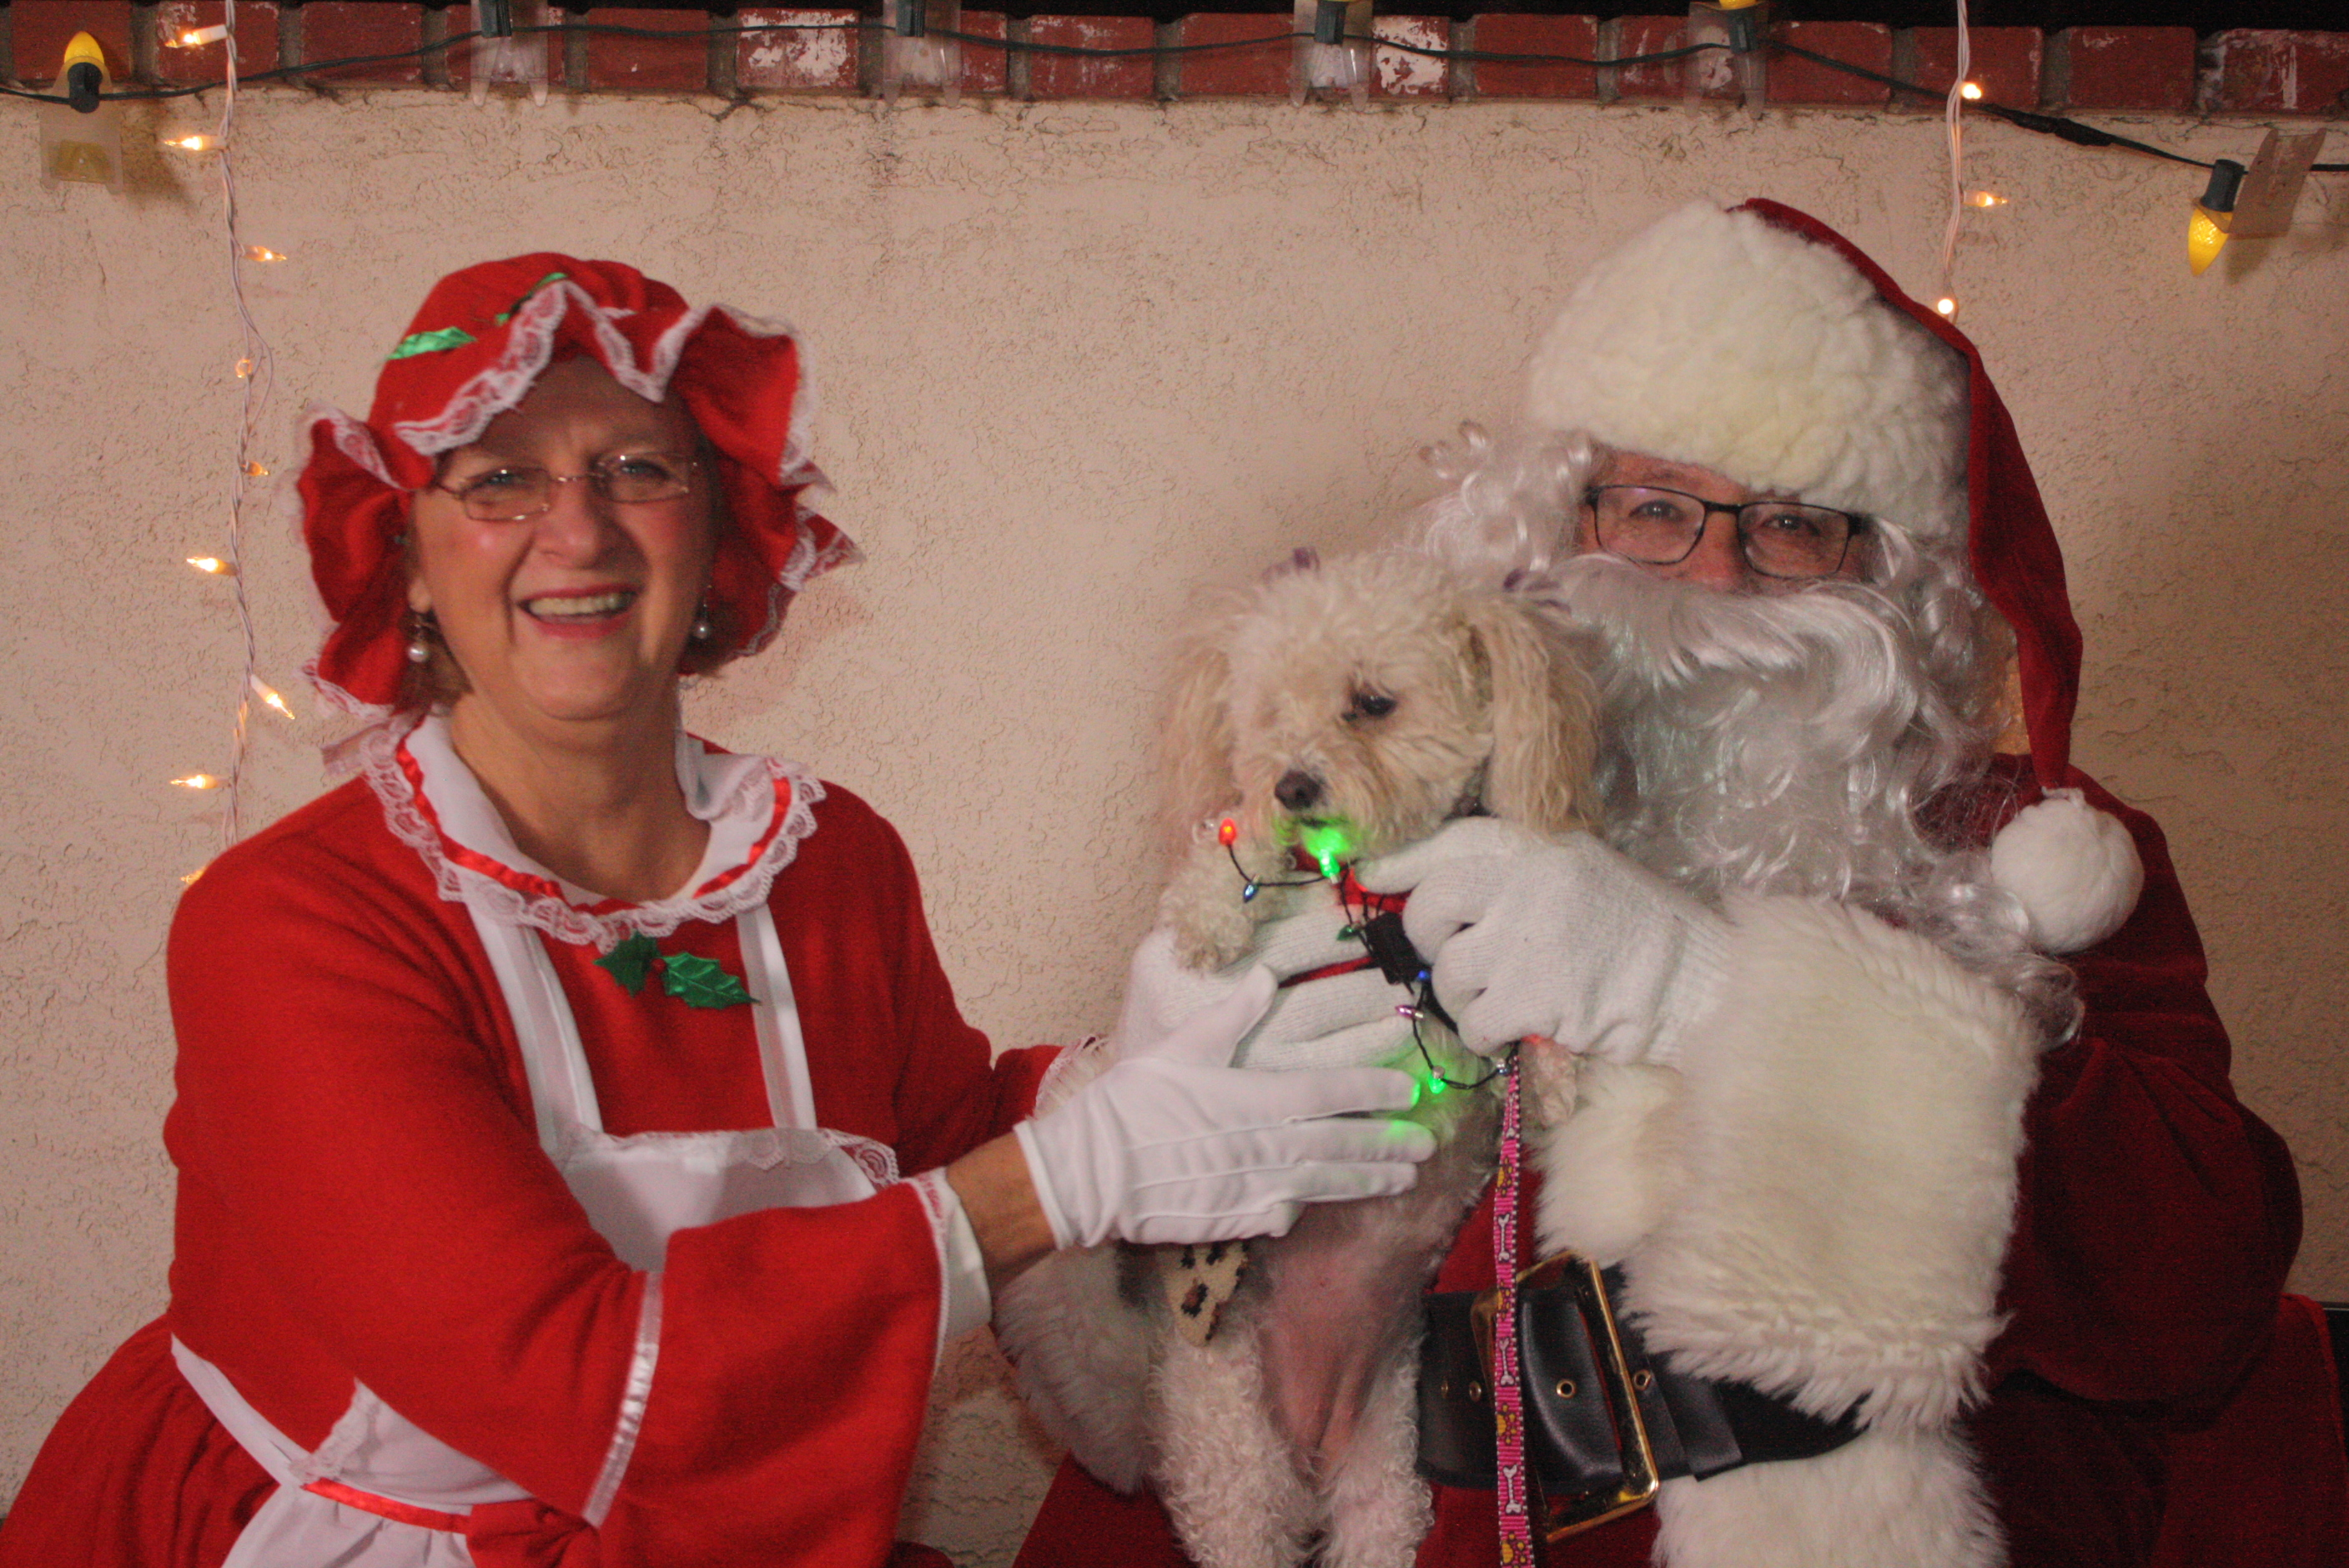 Santa and Mrs. Clause holding a white dog